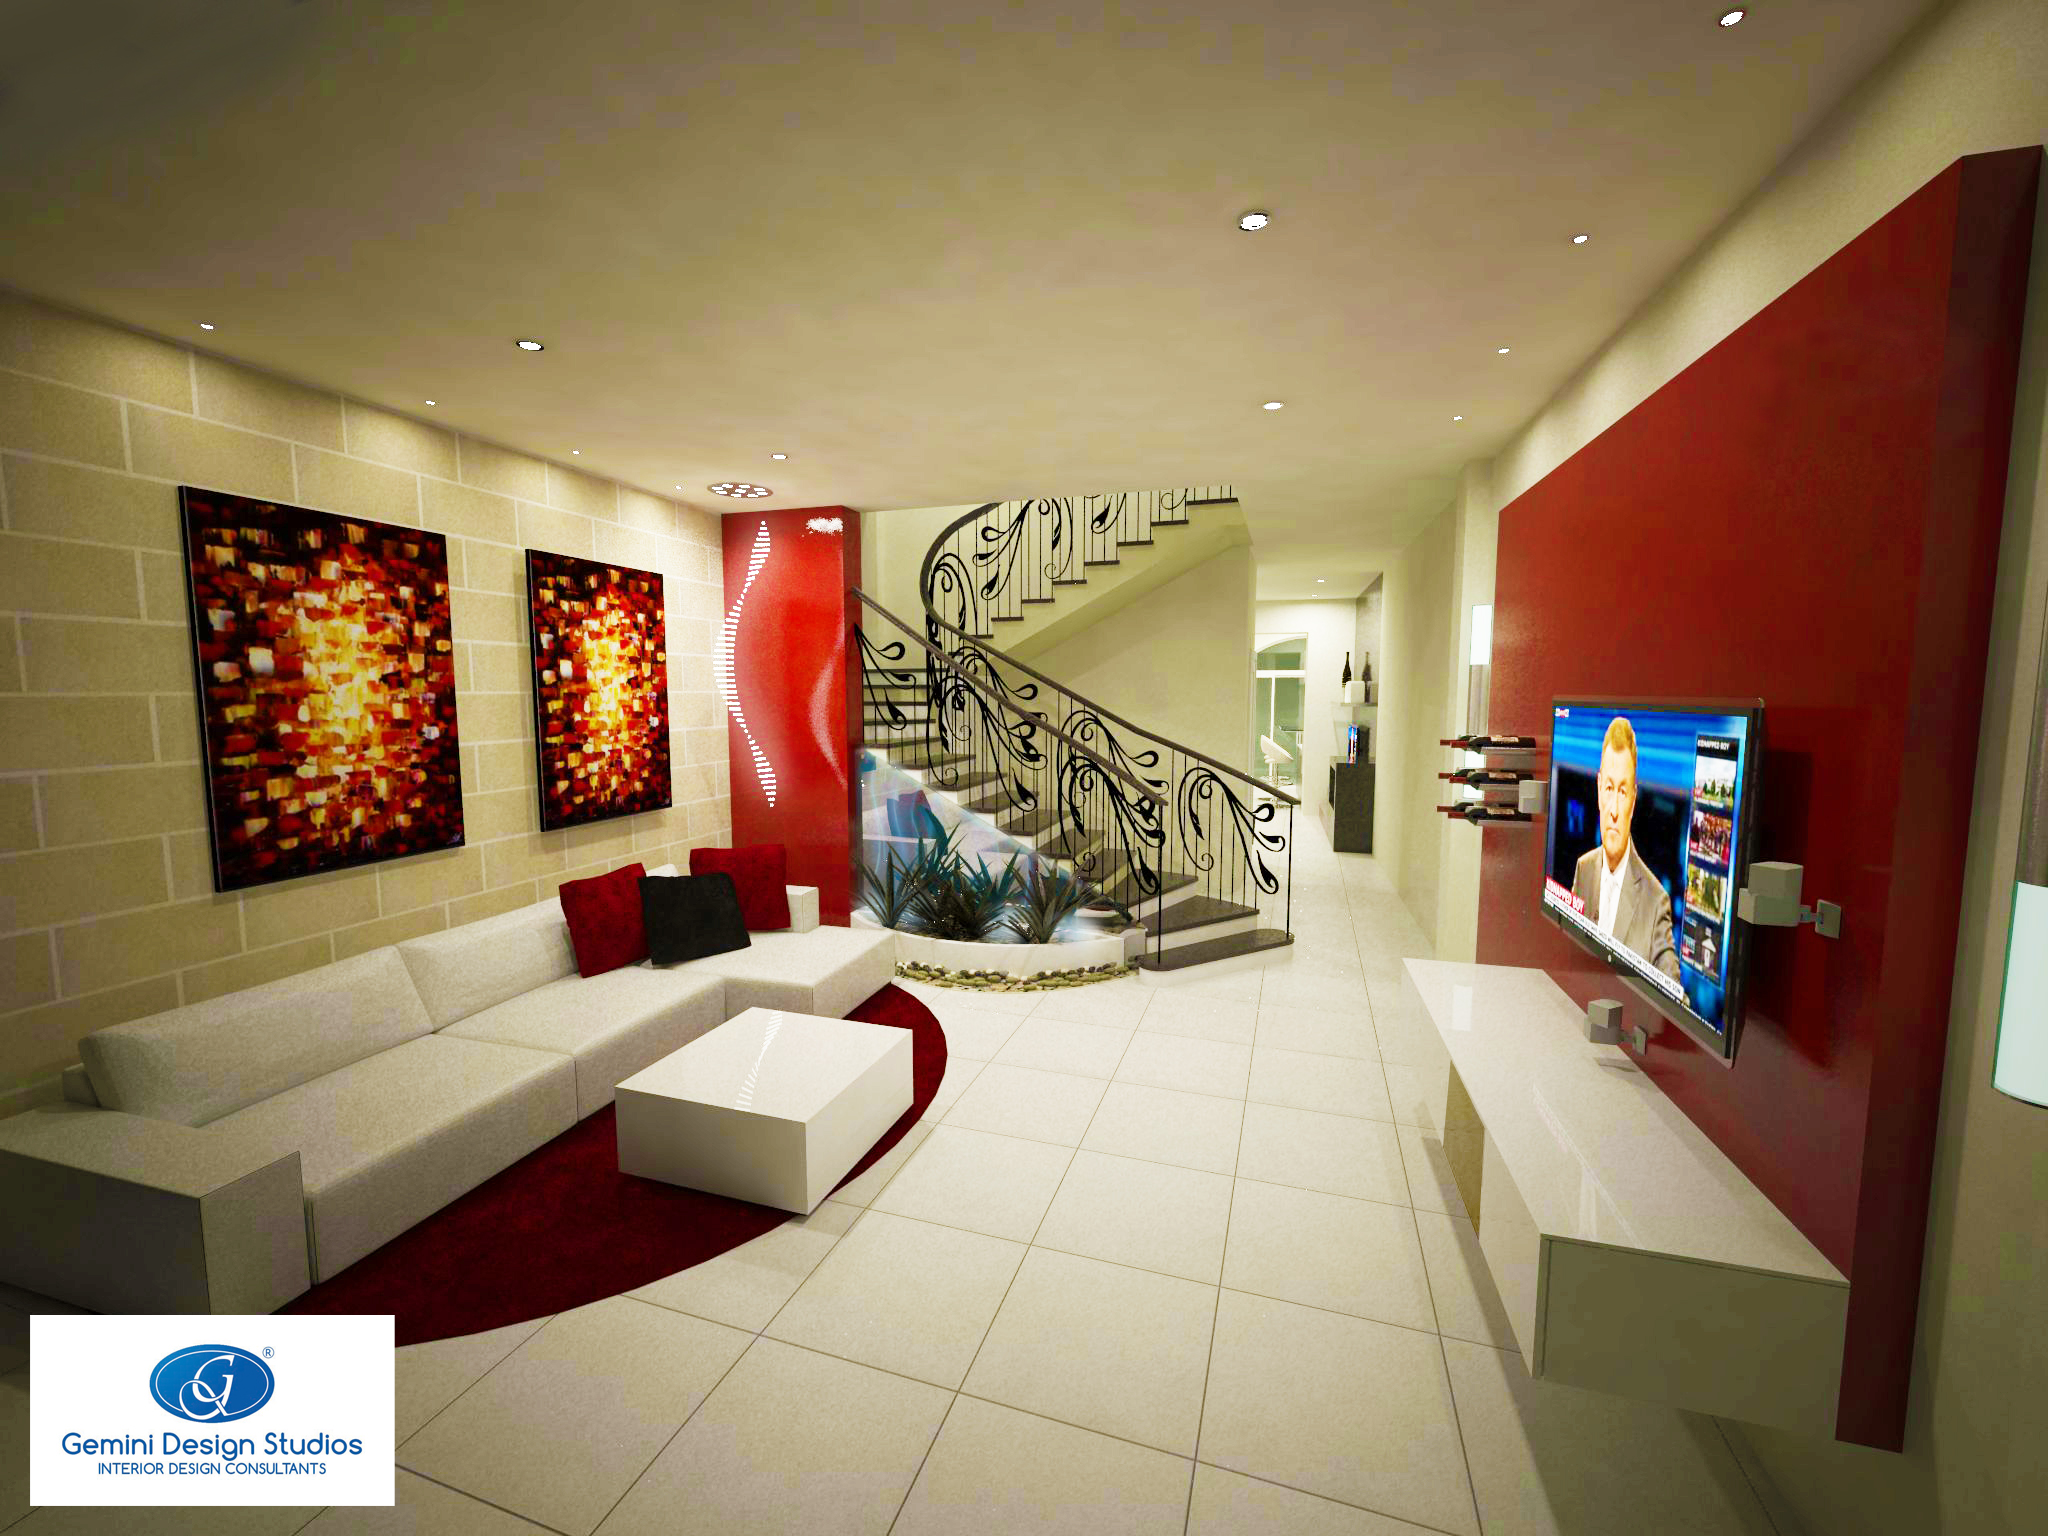 Blog Interior Design Malta Gemini Design Studios Ltd